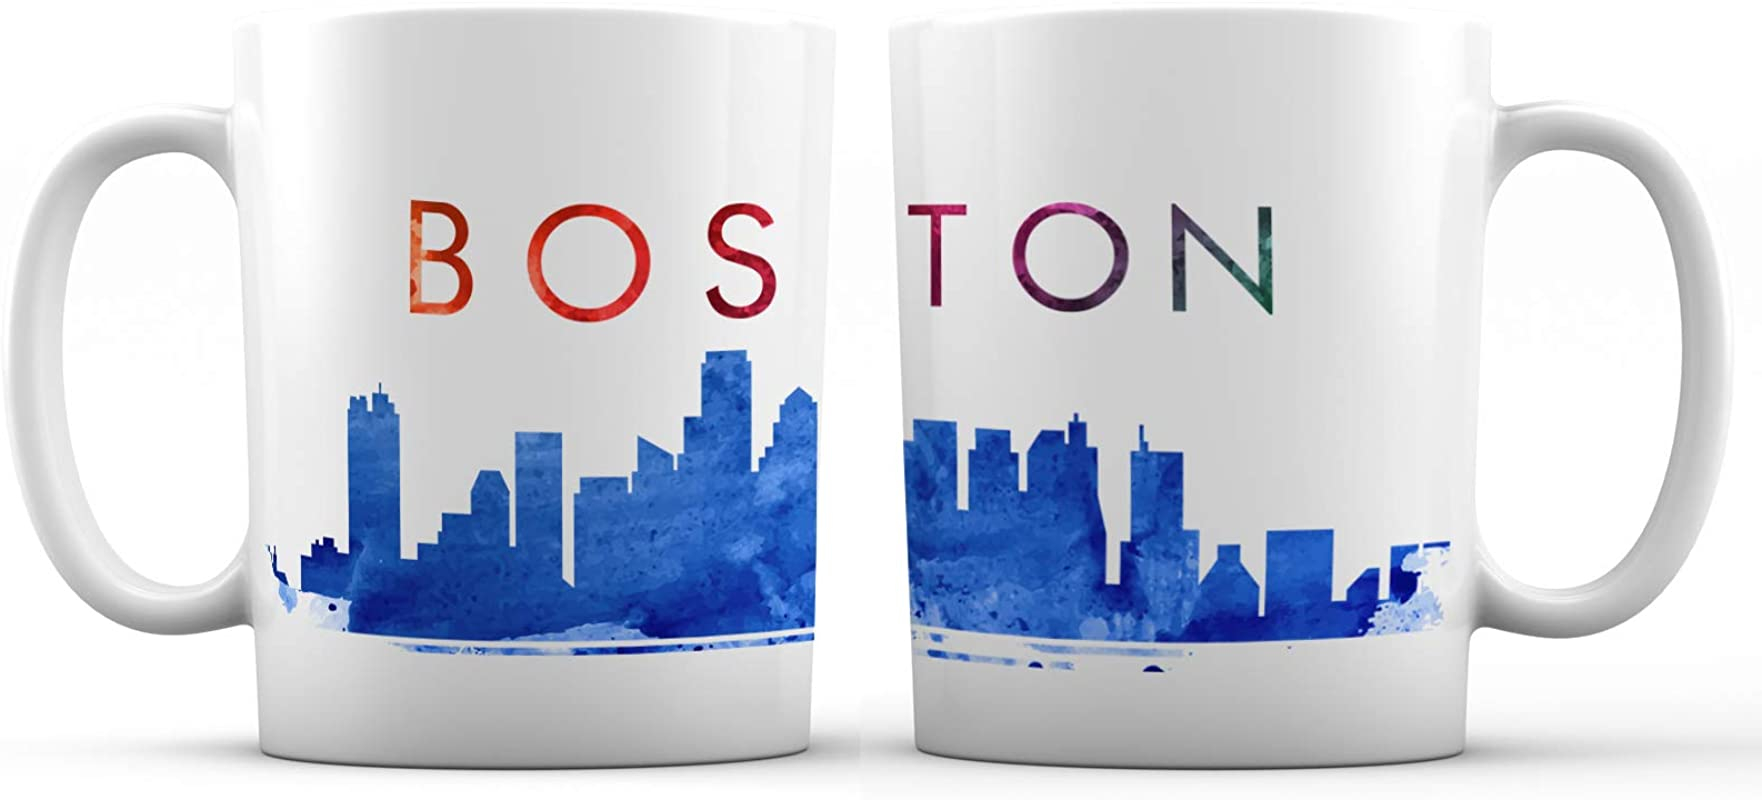 Boston Iconic City View Ceramic Coffee Mug 11 Oz Awesome New Design Colorful Decorative Souvenir Gift Cup For Friends Family Tourists Men And Women Blue